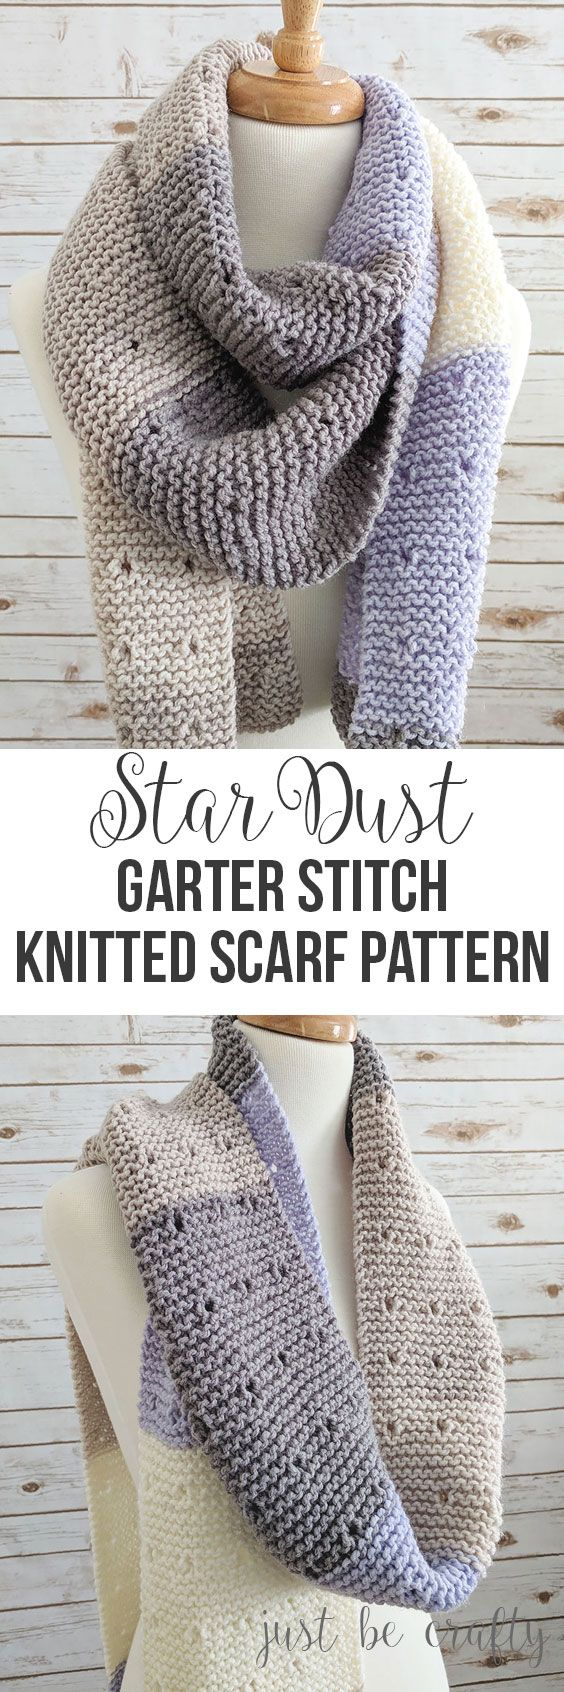 Star Dust Knitter Garter Stitch Scarf Pattern | Free Pattern by Just Be Crafty